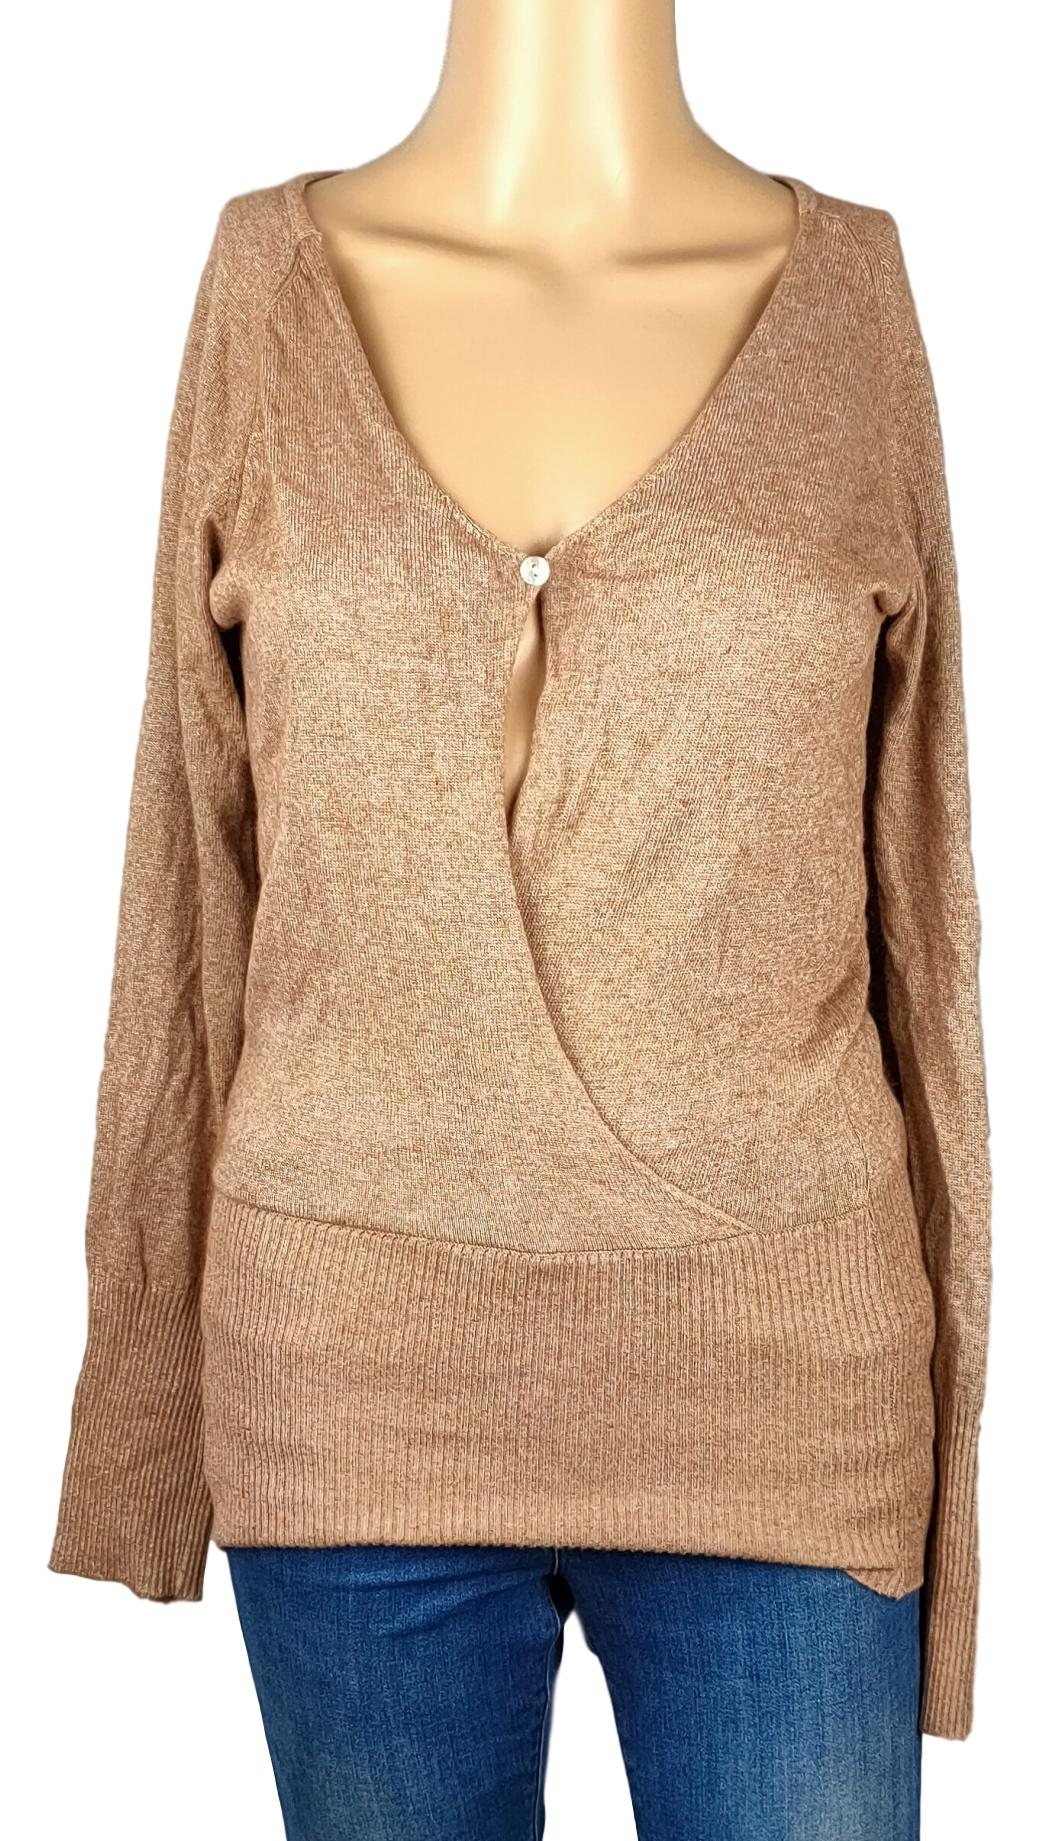 Morgan - Taille 36 ( XS )